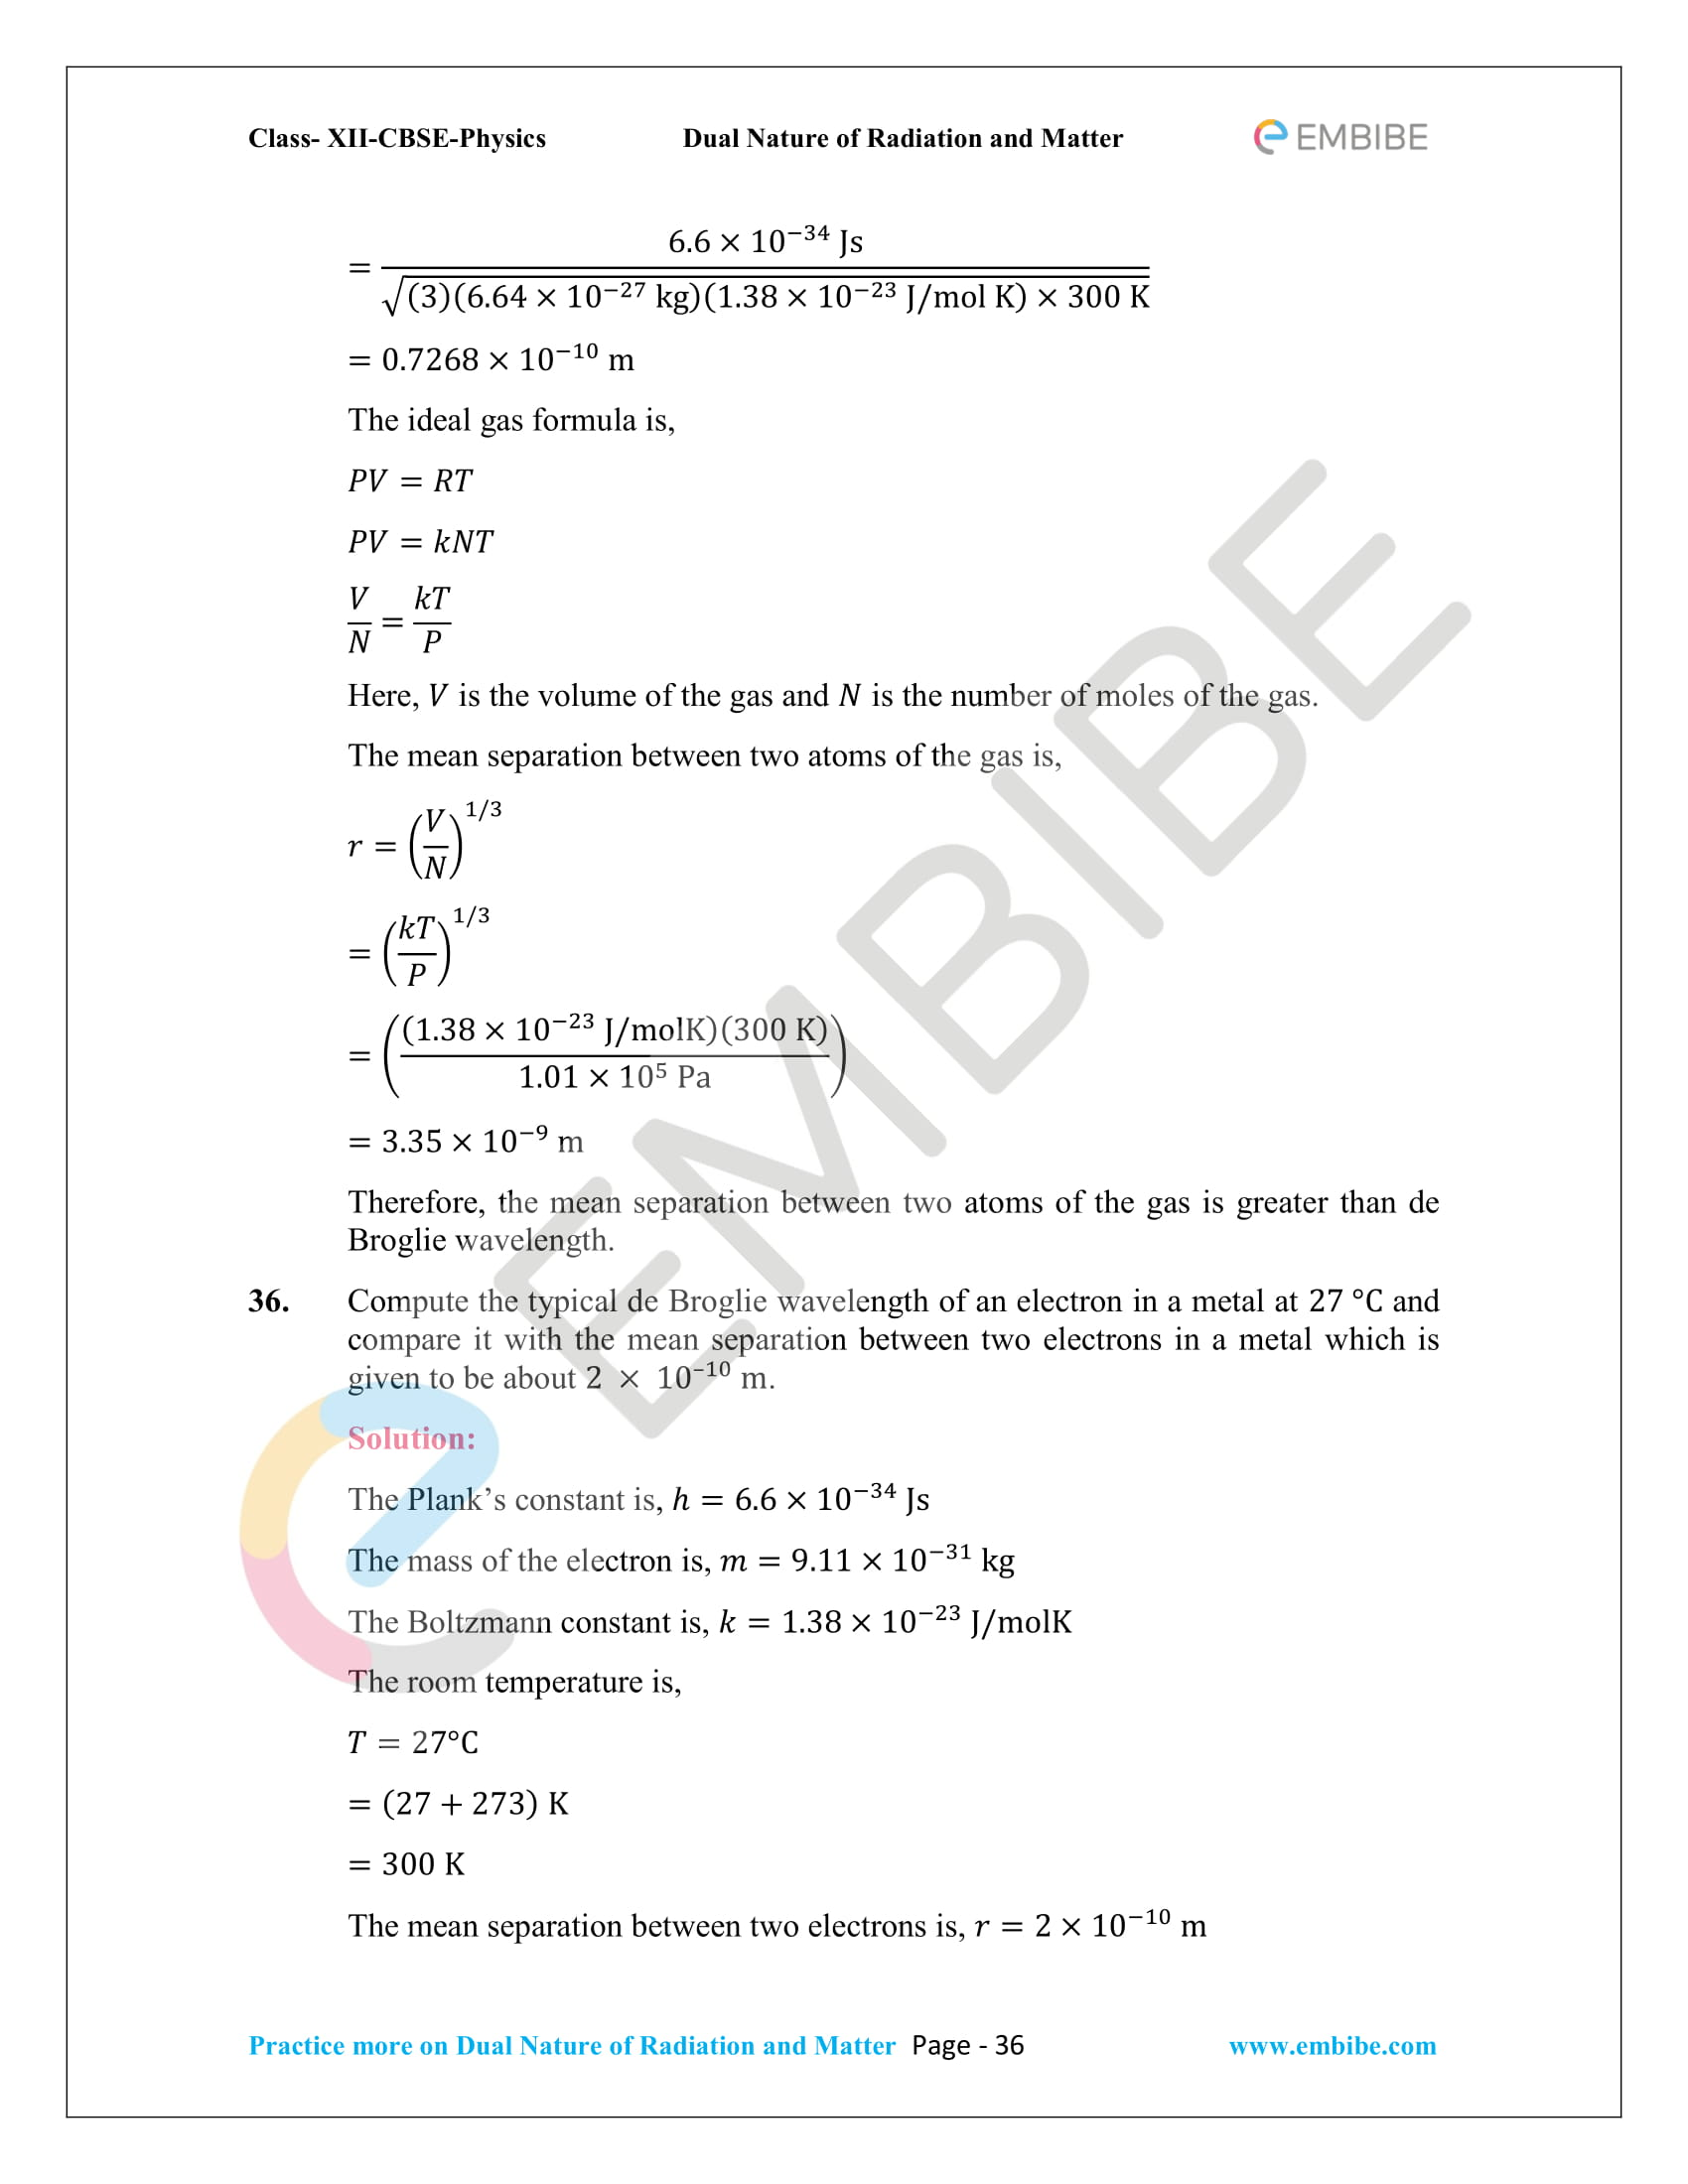 NCERT_Grade 12_Physics_Ch_11_Dual Nature of Radiation and Matter-36